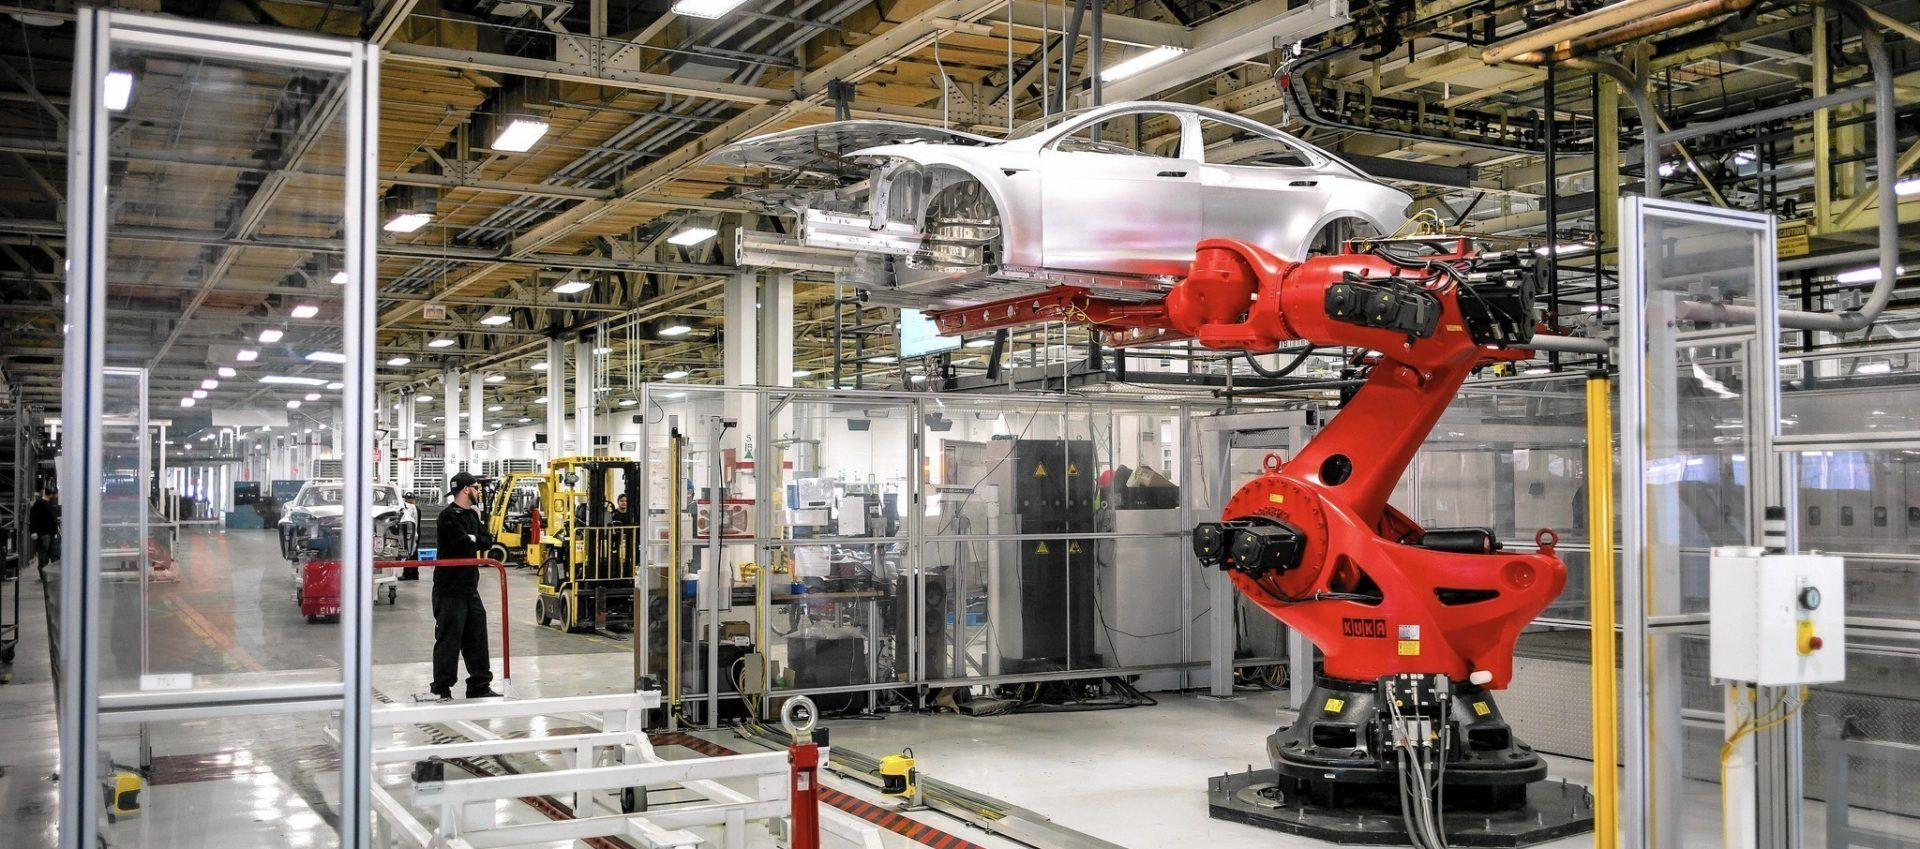 http://mds-systems.pl/wp-content/uploads/2016/10/cropped-la-fi-hy-california-auto-industry-20151118.jpg